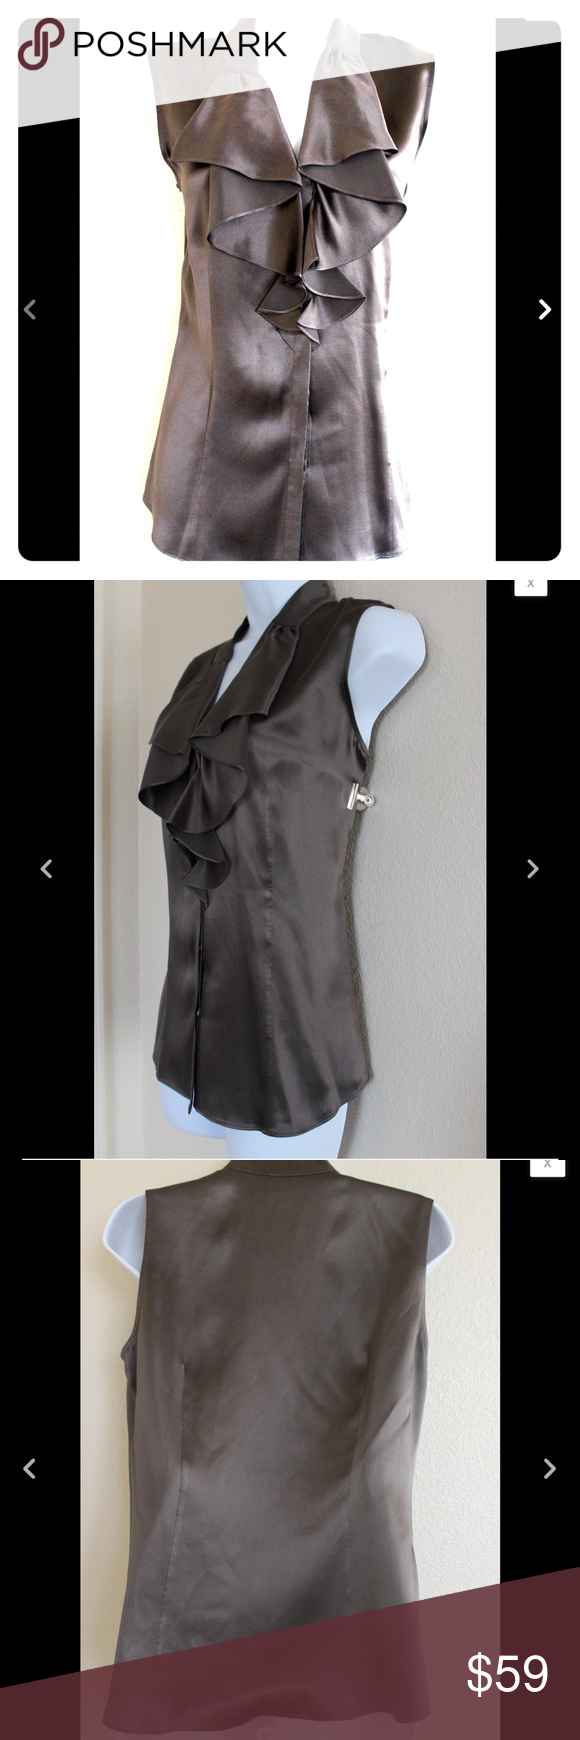 """💟New Listing💟Lafayette 148 New York 100% Silk Lafayette 148 New York Top  Size 4  Brown  100% Silk  Button Closure  Would make a great gift for a loved one or special treat for yourself!  Measurements while laying flat:  Shoulder to Shoulder 15""""  Armpit to Armpit 19""""  Length from Shoulder 24 1/2""""  Waist 17"""" Lafayette 148 New York Tops Blouses"""